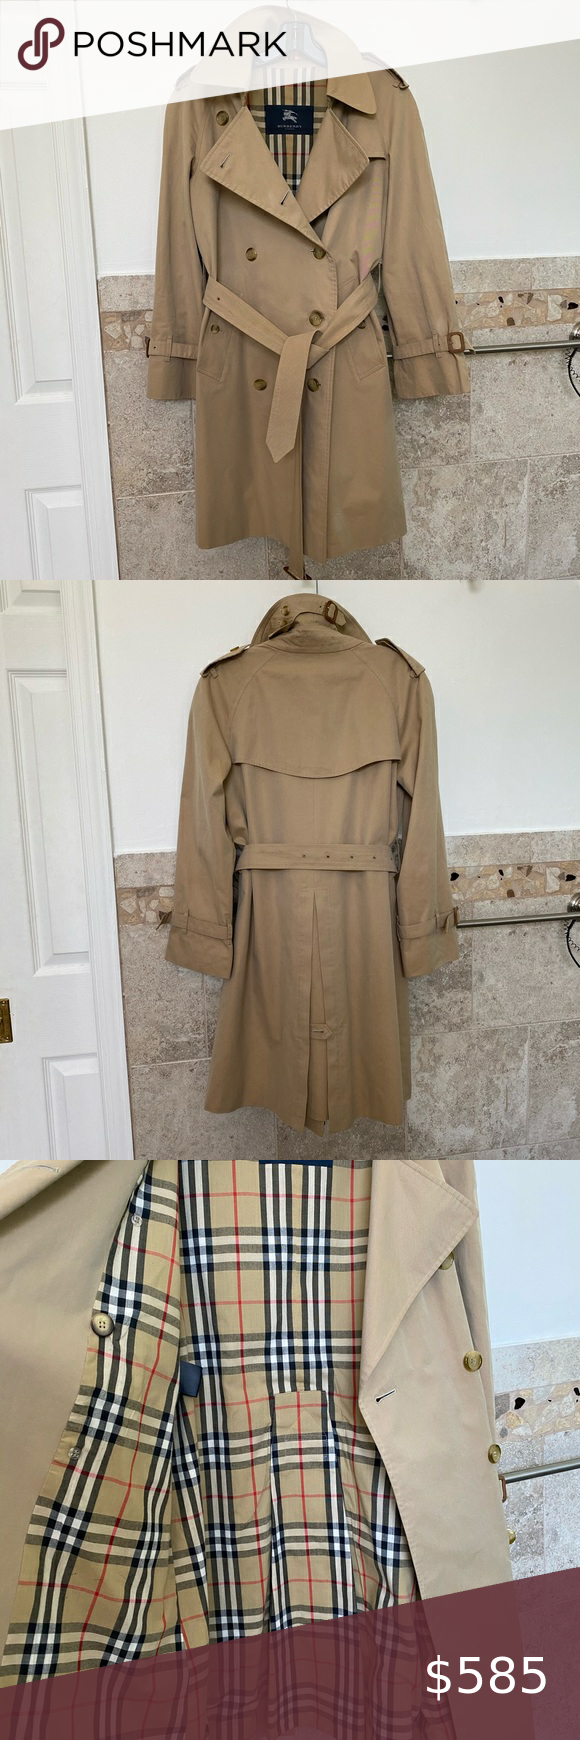 Burberry Women Trench Coat Coat Length 35 Inch Chest Across 19 Inch Size Us 6 Outer 100 Cotton Vintage Check Trench Coats Women Trench Coat Burberry Women